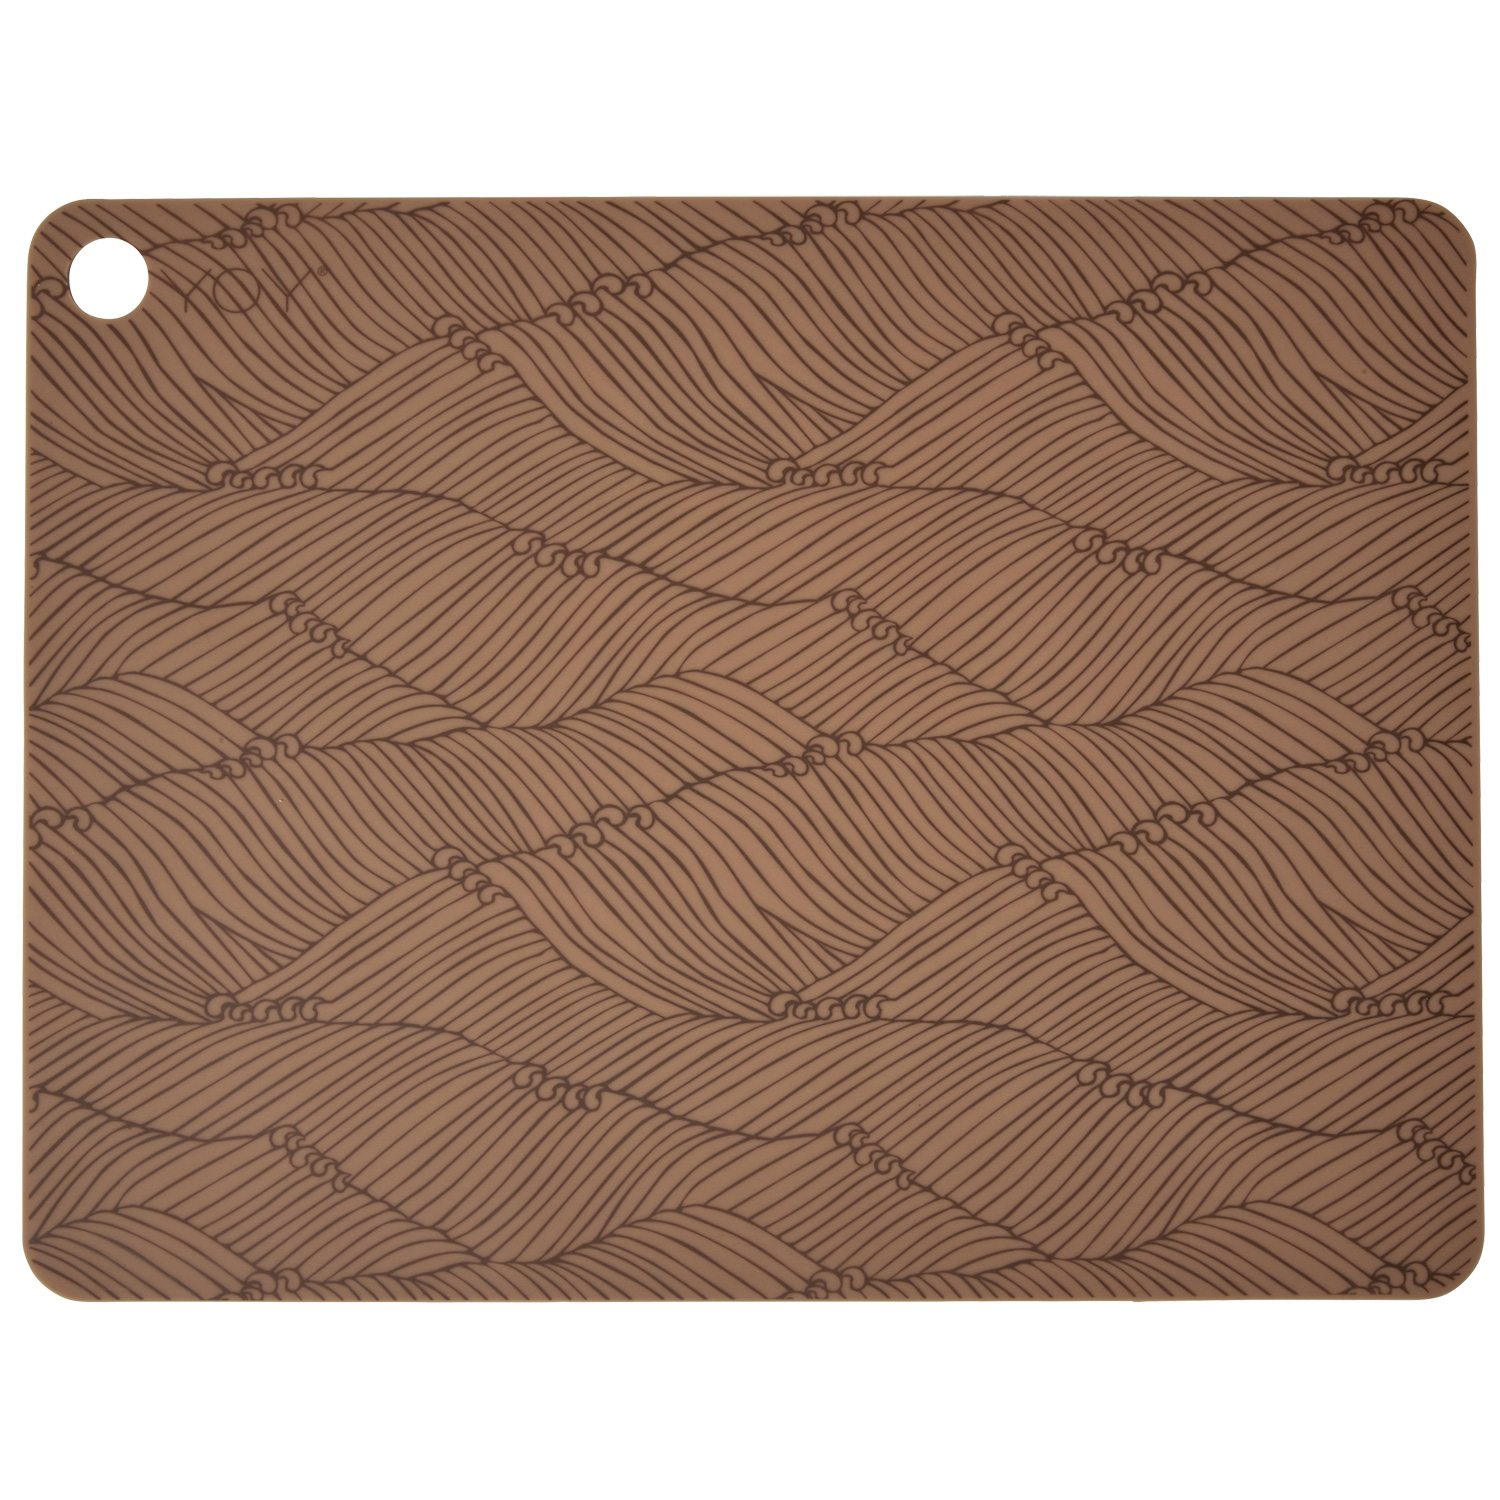 Placemat 2-pack, caramel